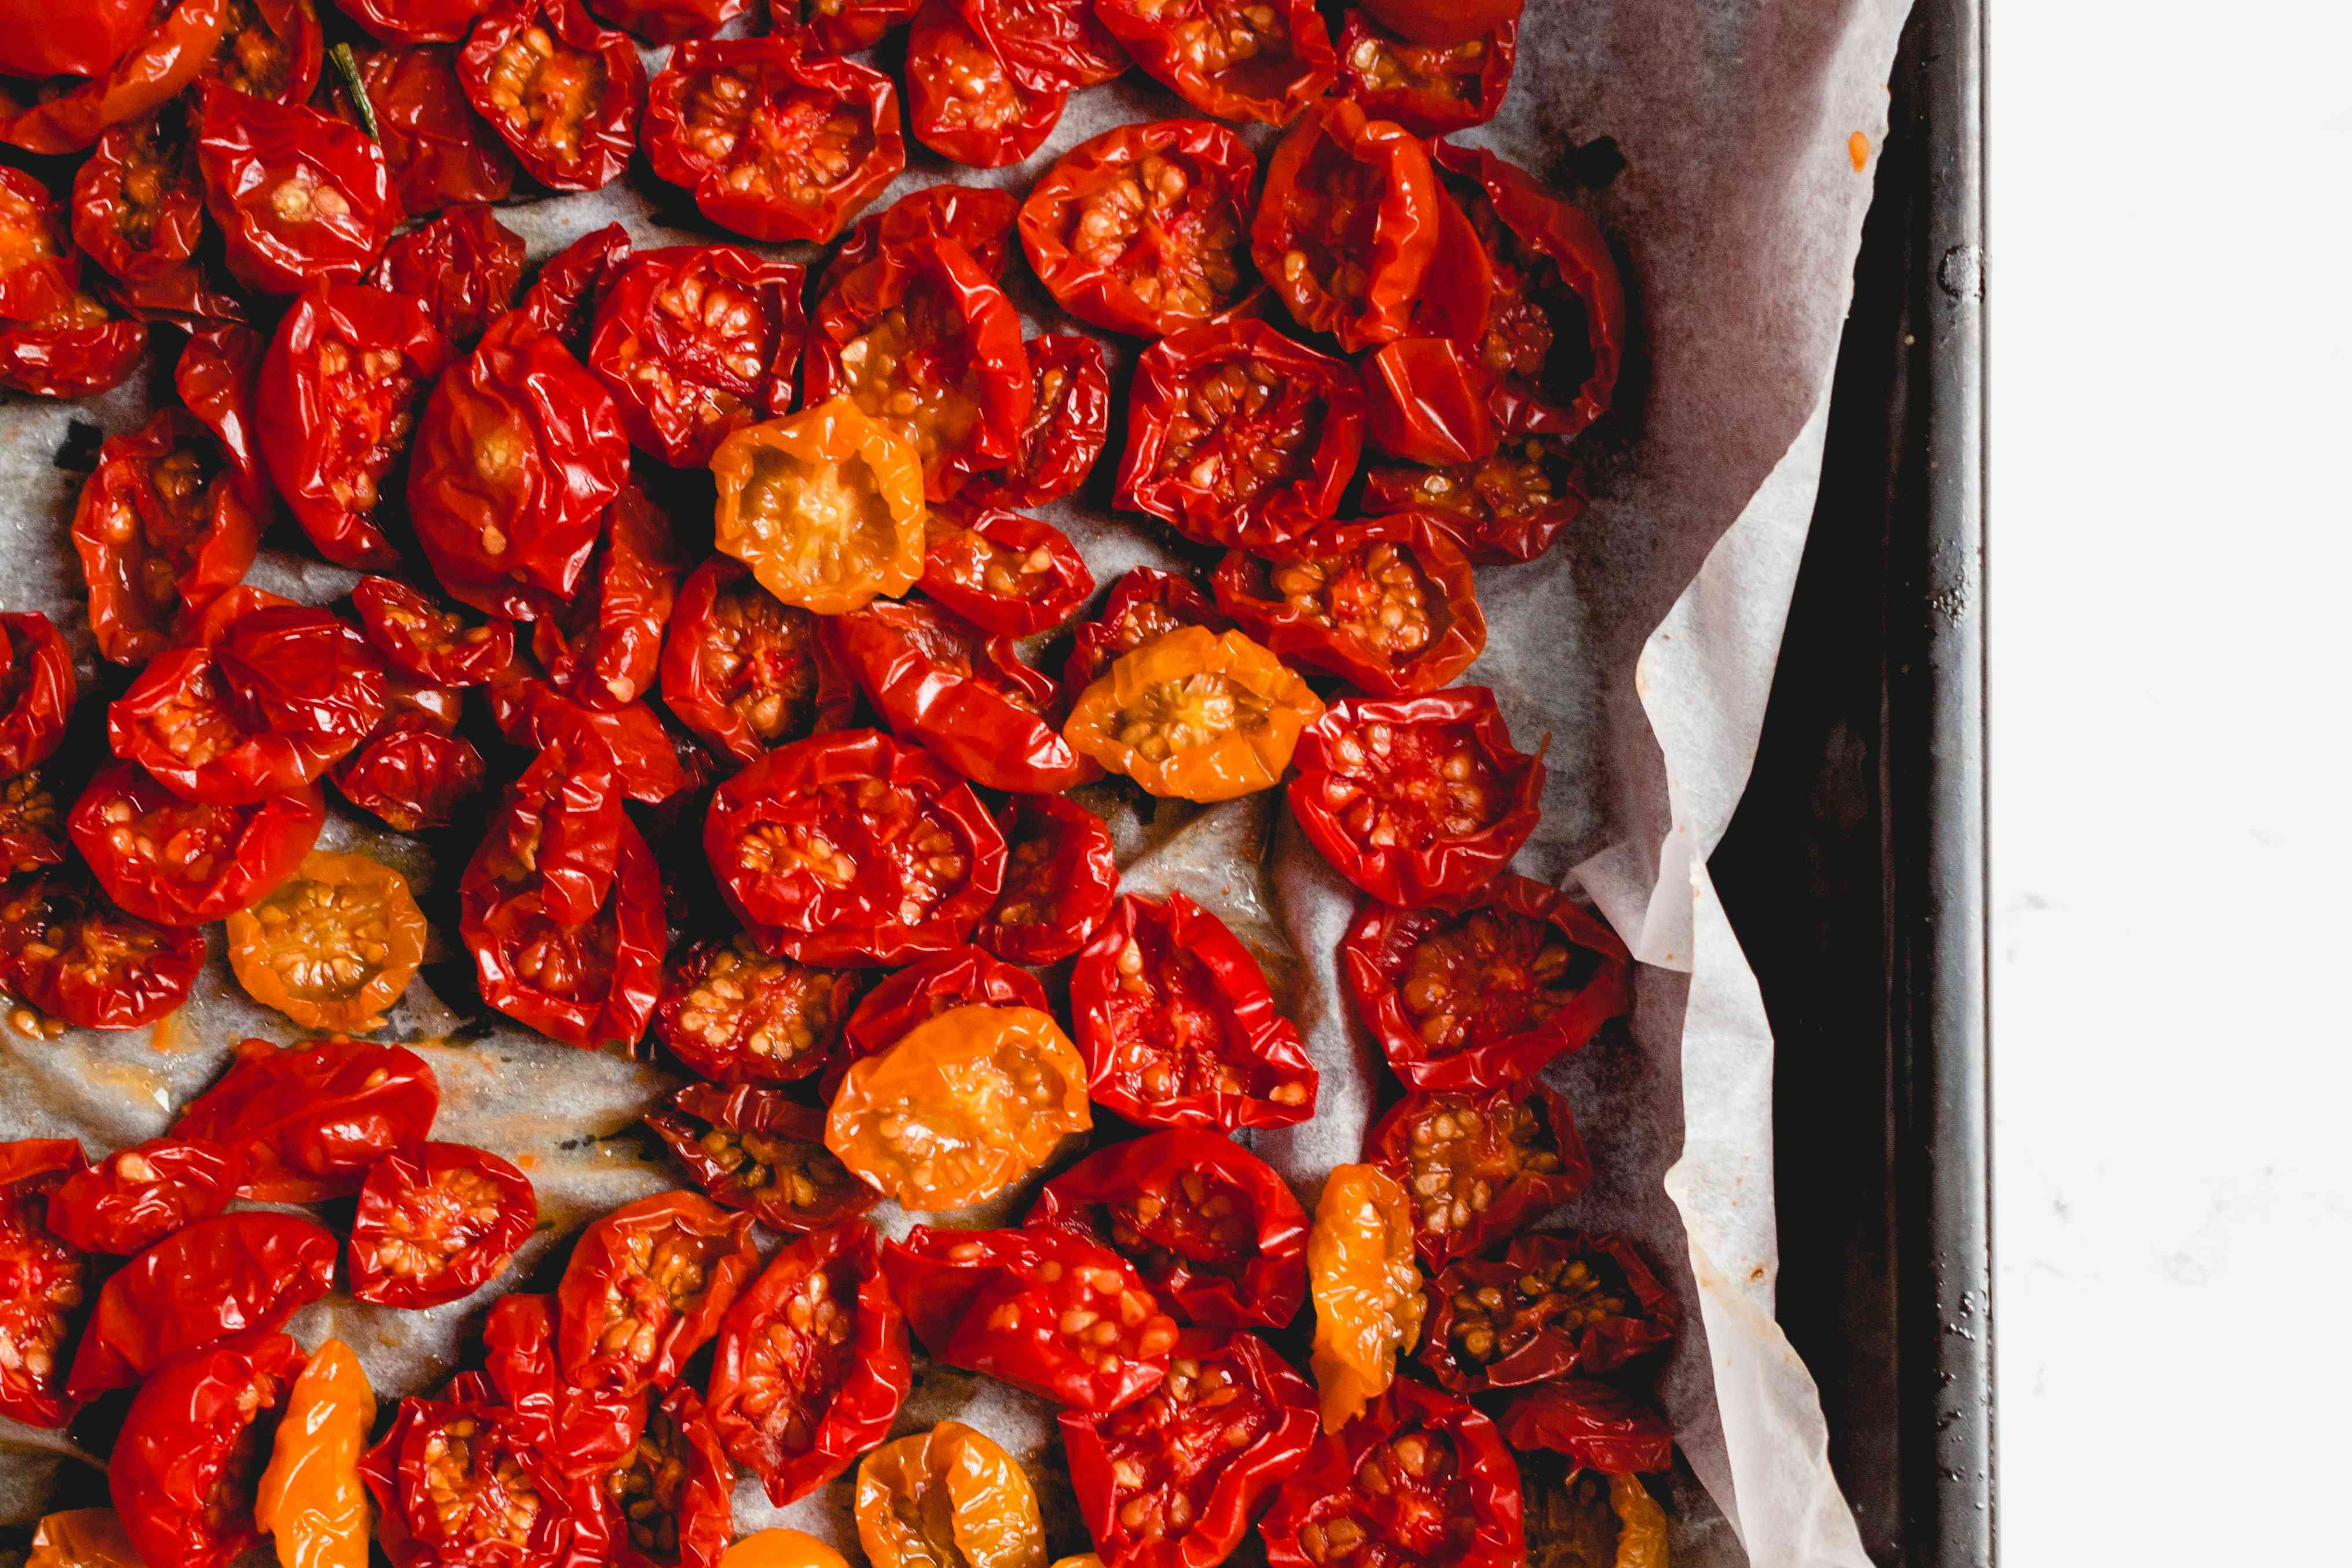 Oven-Dried Cherry Tomatoes on a parchment paper lined baking sheet